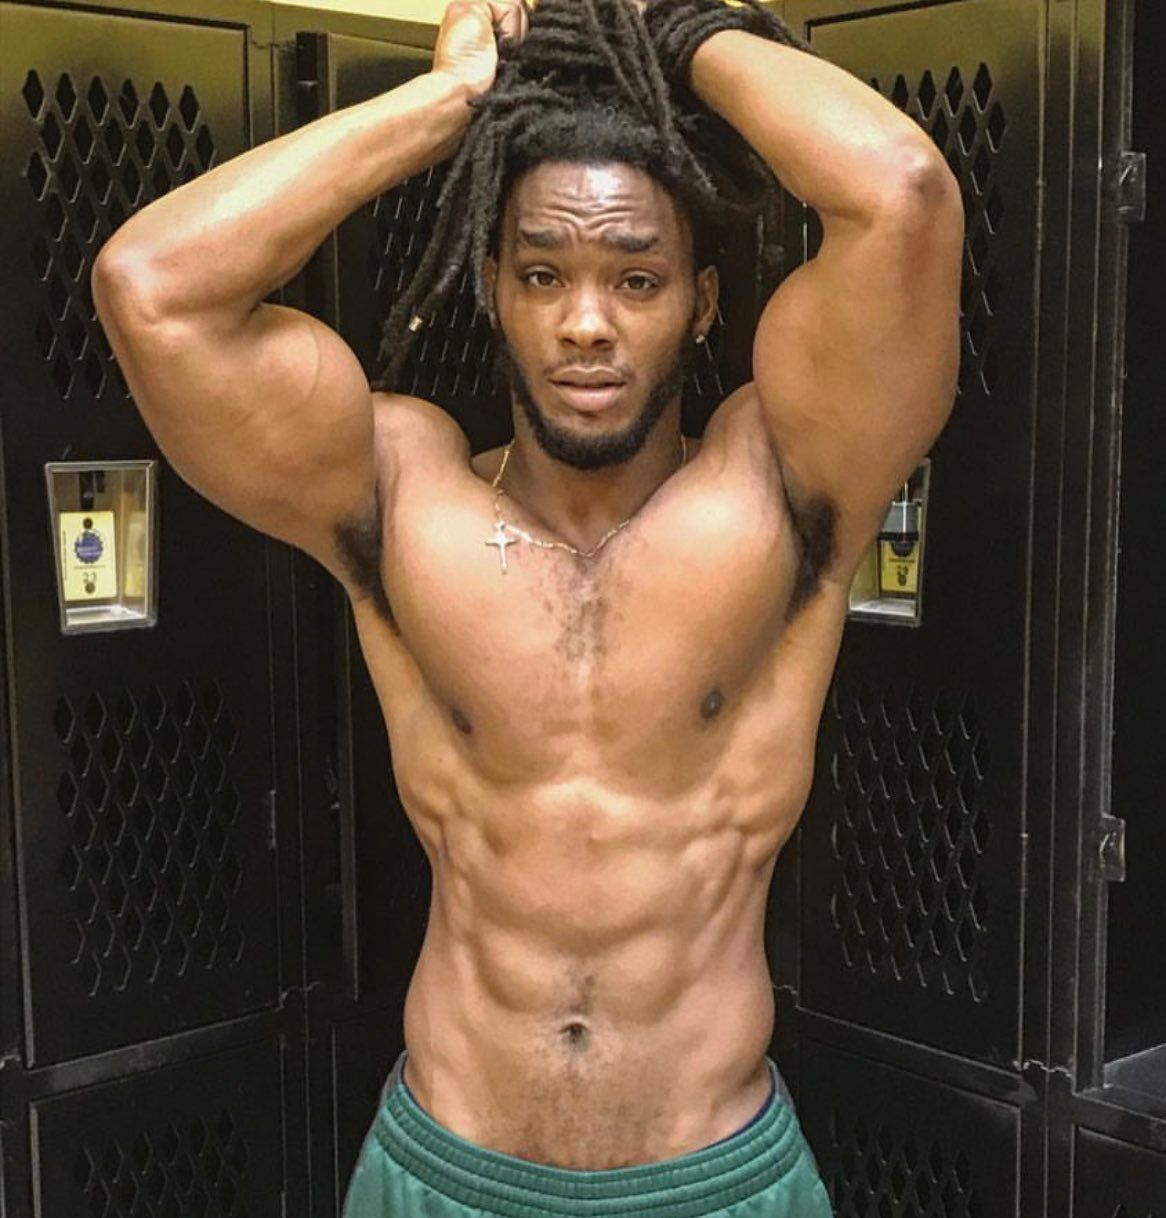 Sexy gay black men with dreads